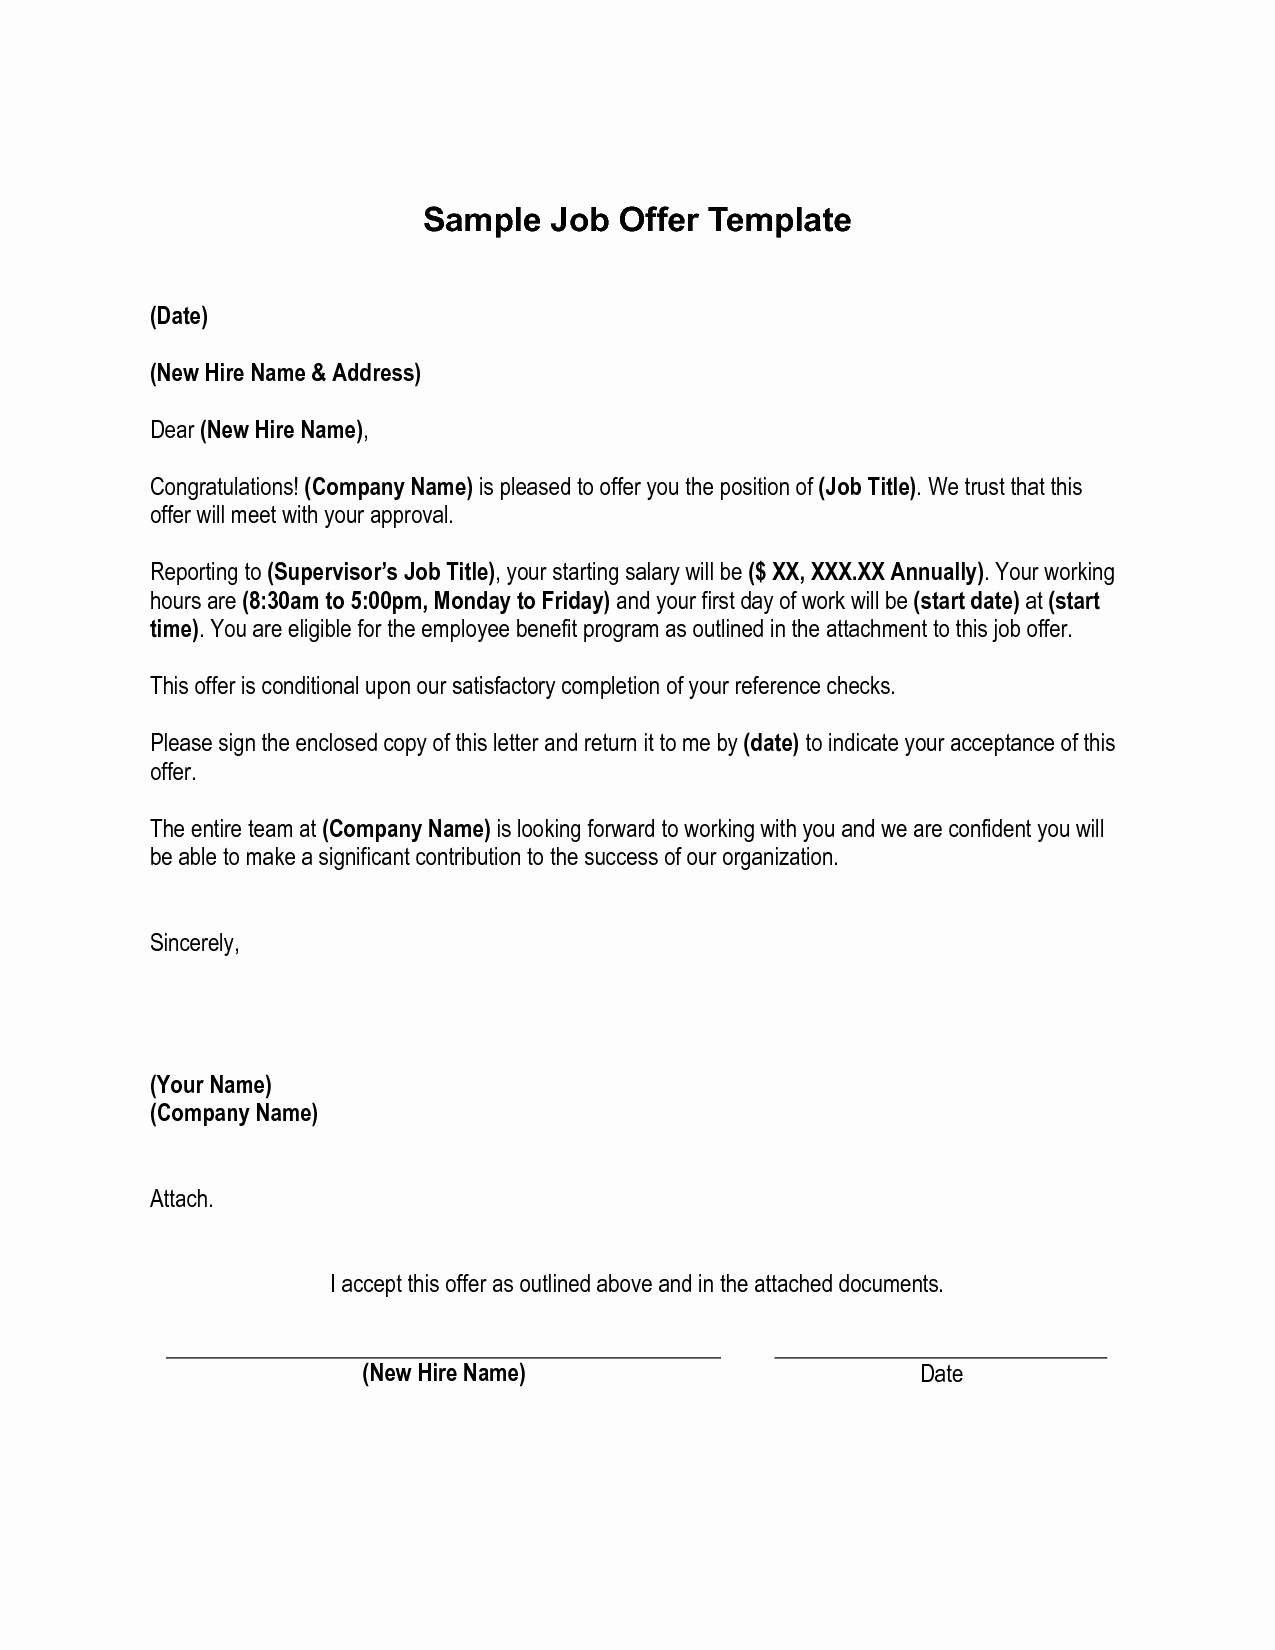 Job Offer Template Word New Job Fer Letter From Employer to Employee – Planner